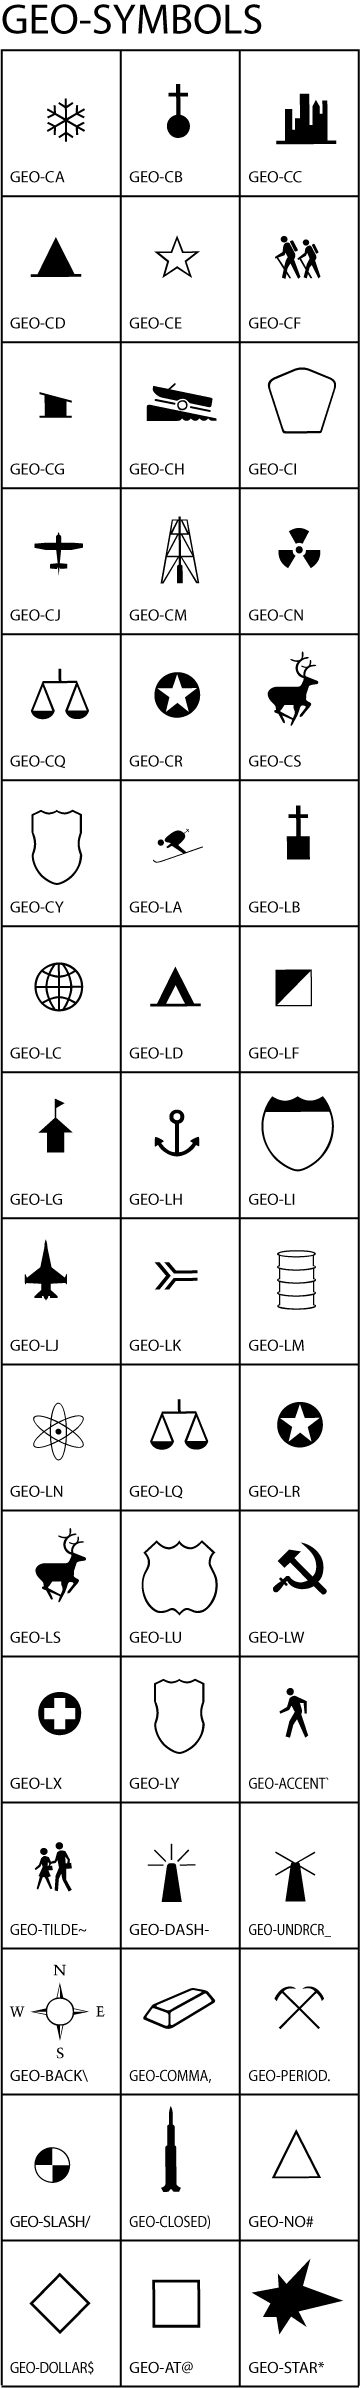 Geographic Symbols Clip-Art Gallery Chart